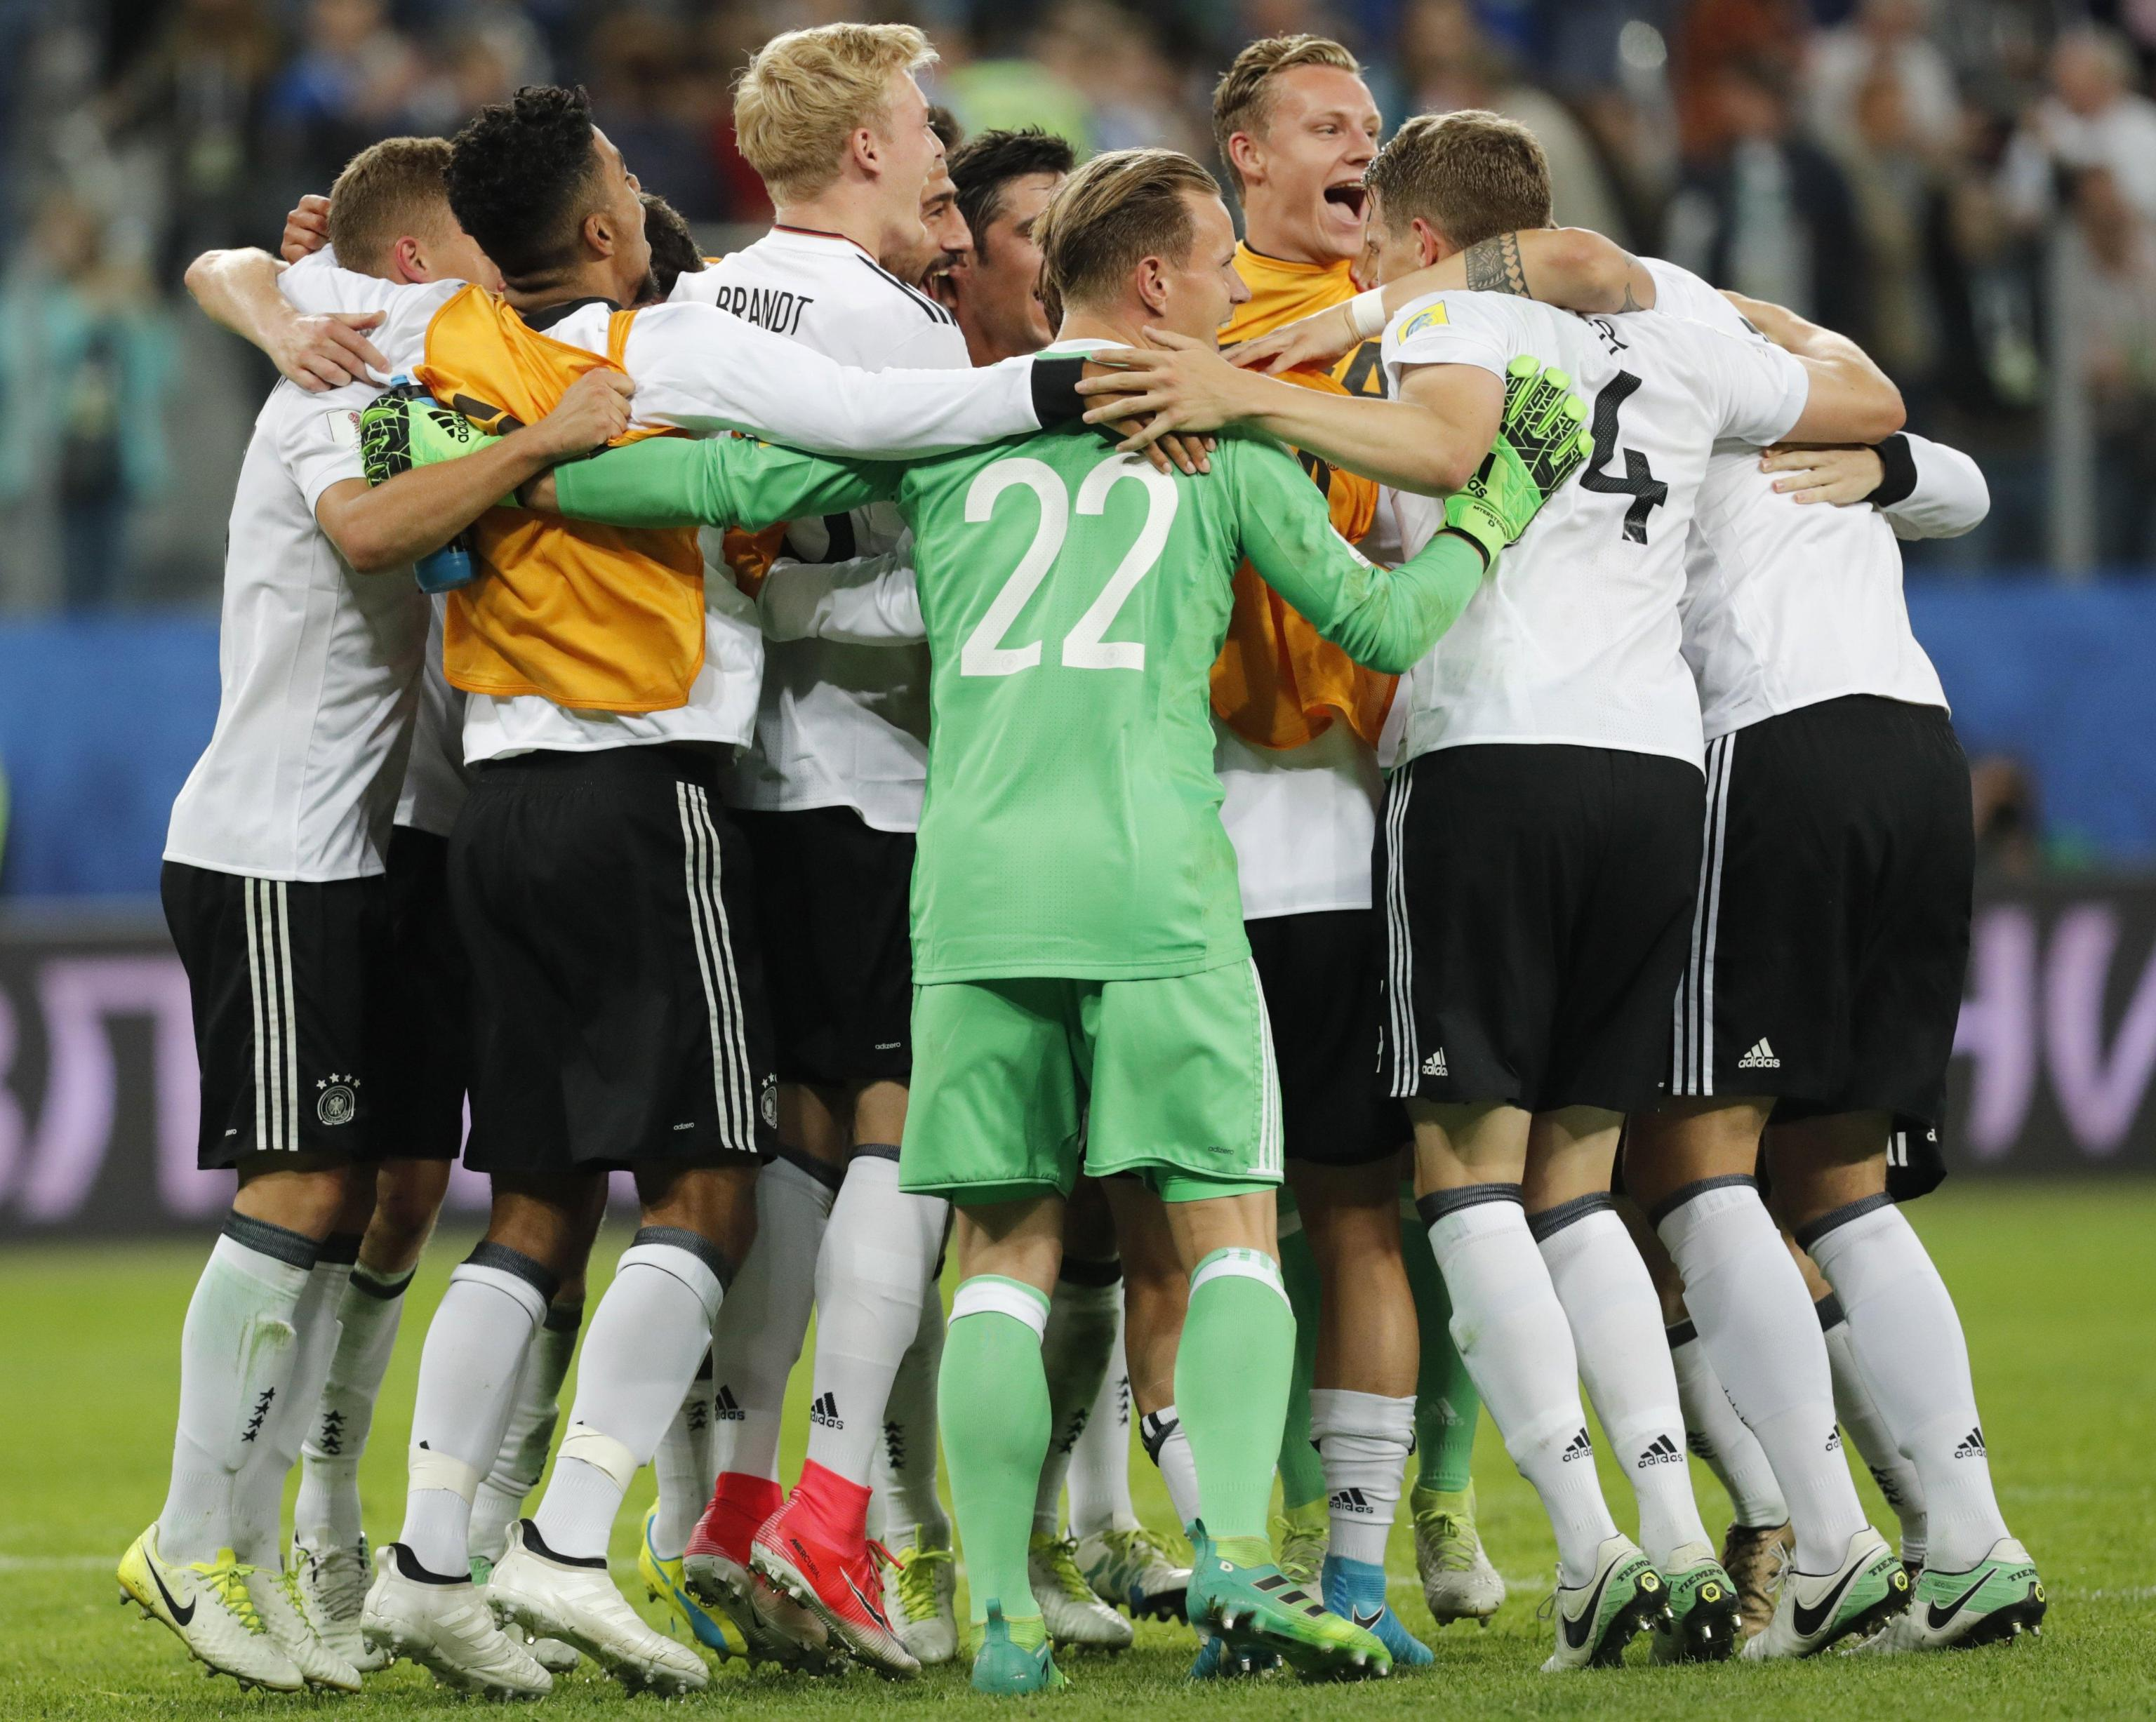 Cile-Germania 0-1 highlights. La Germania ha vinto la Confederations Cup